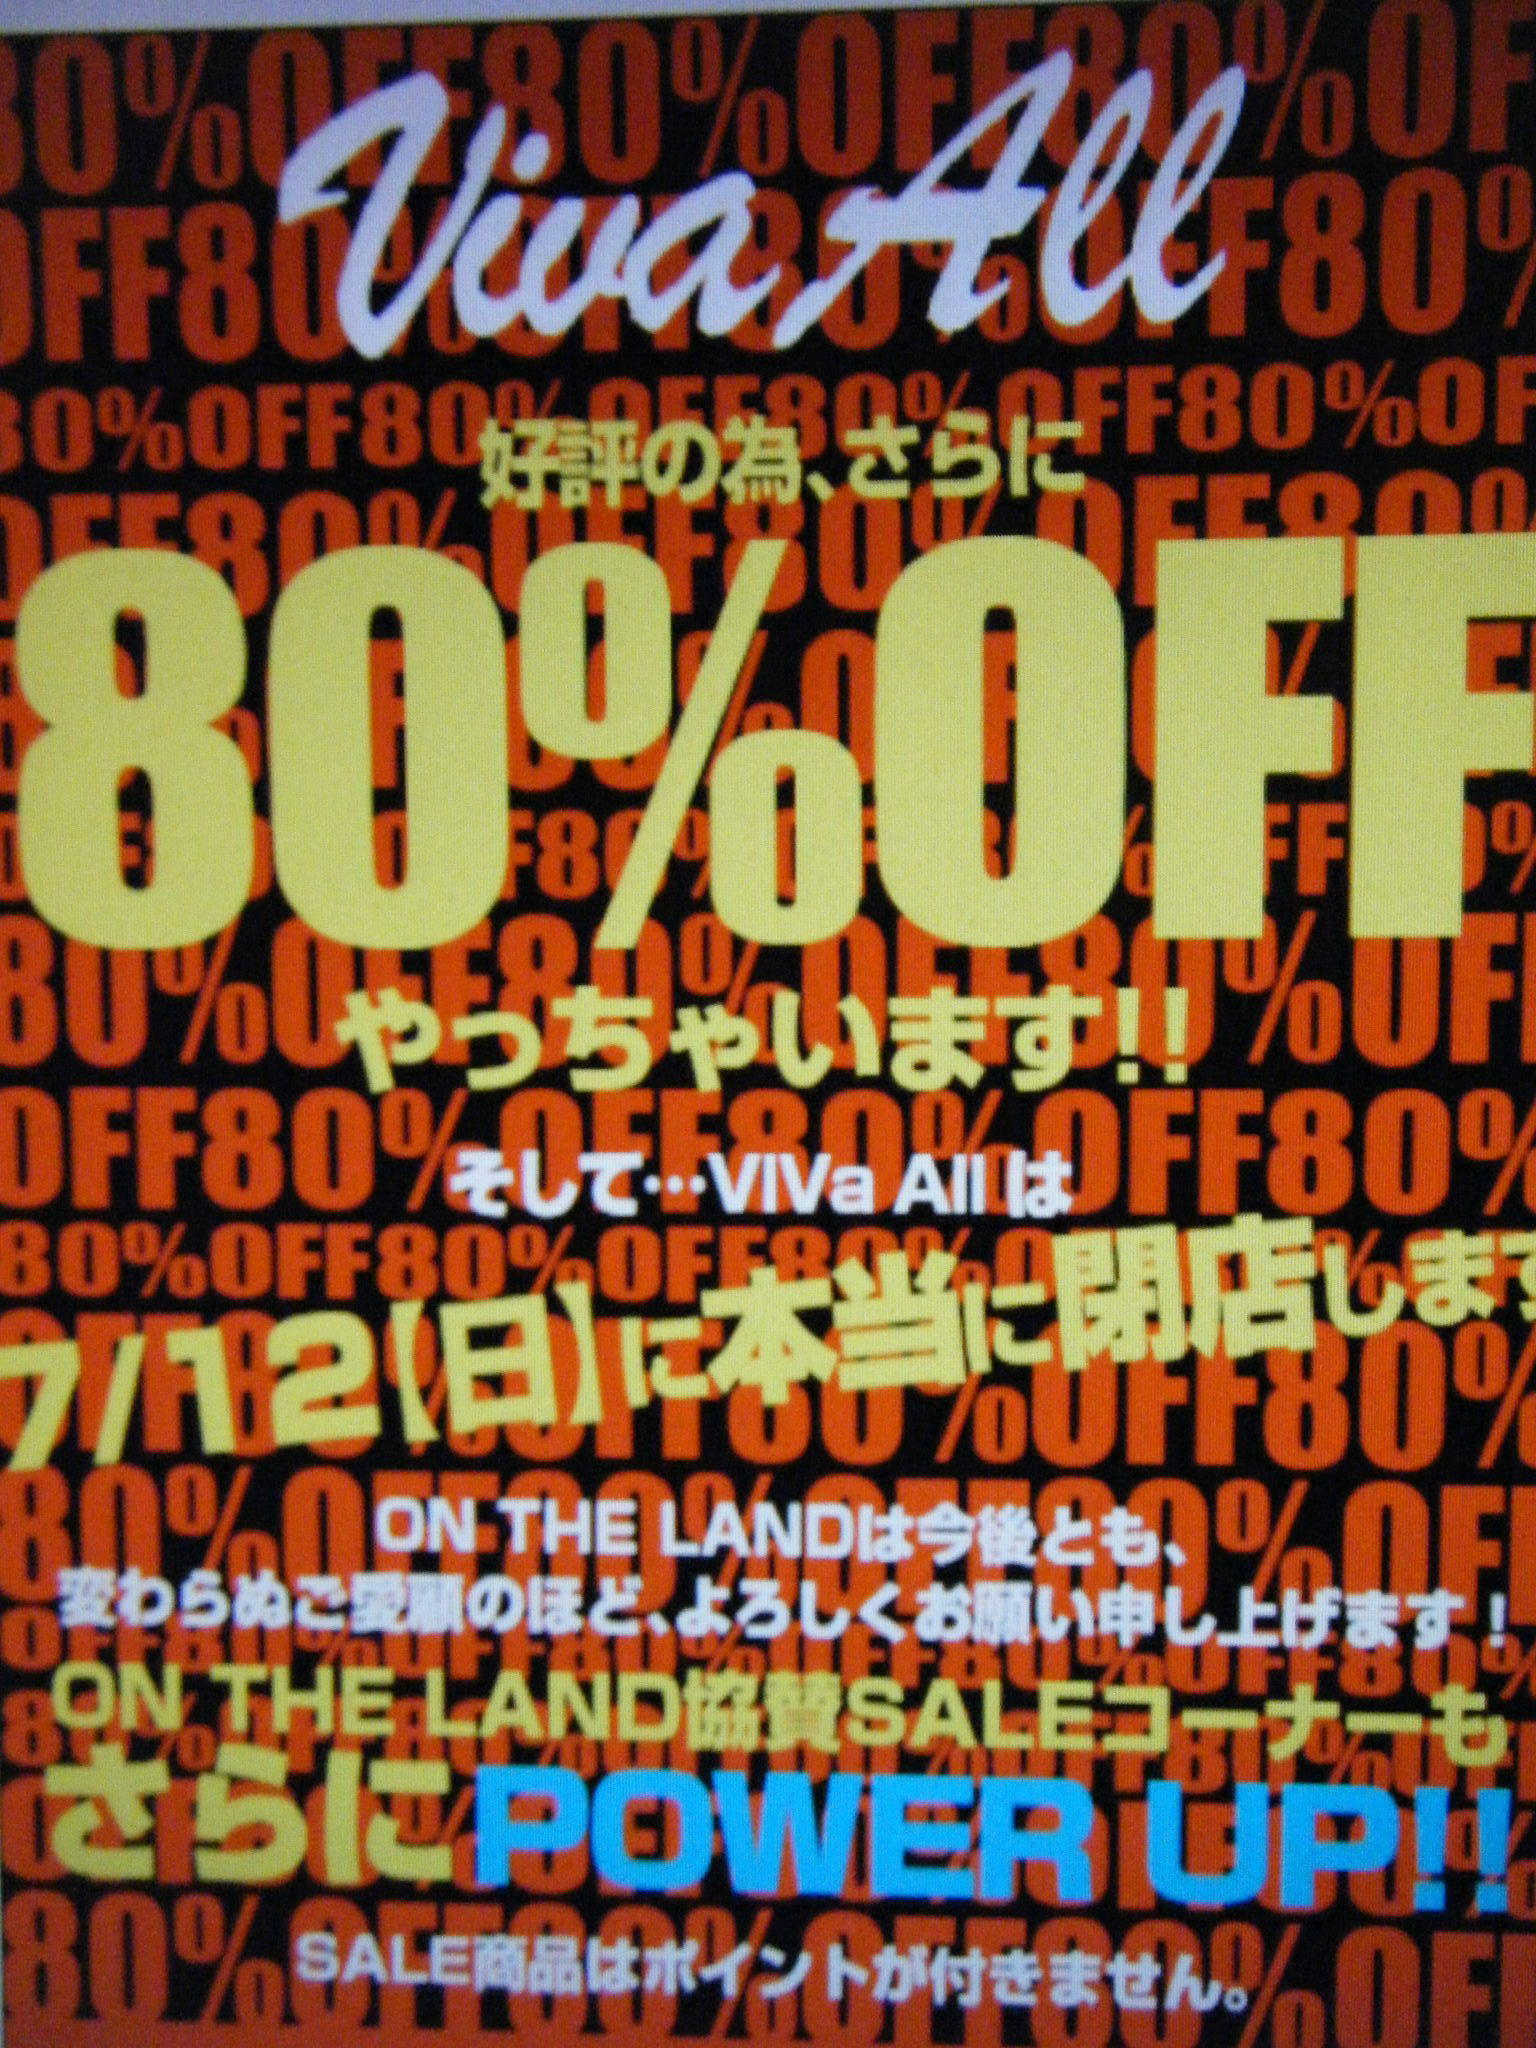 80%OFFSALE!!!!!!!!